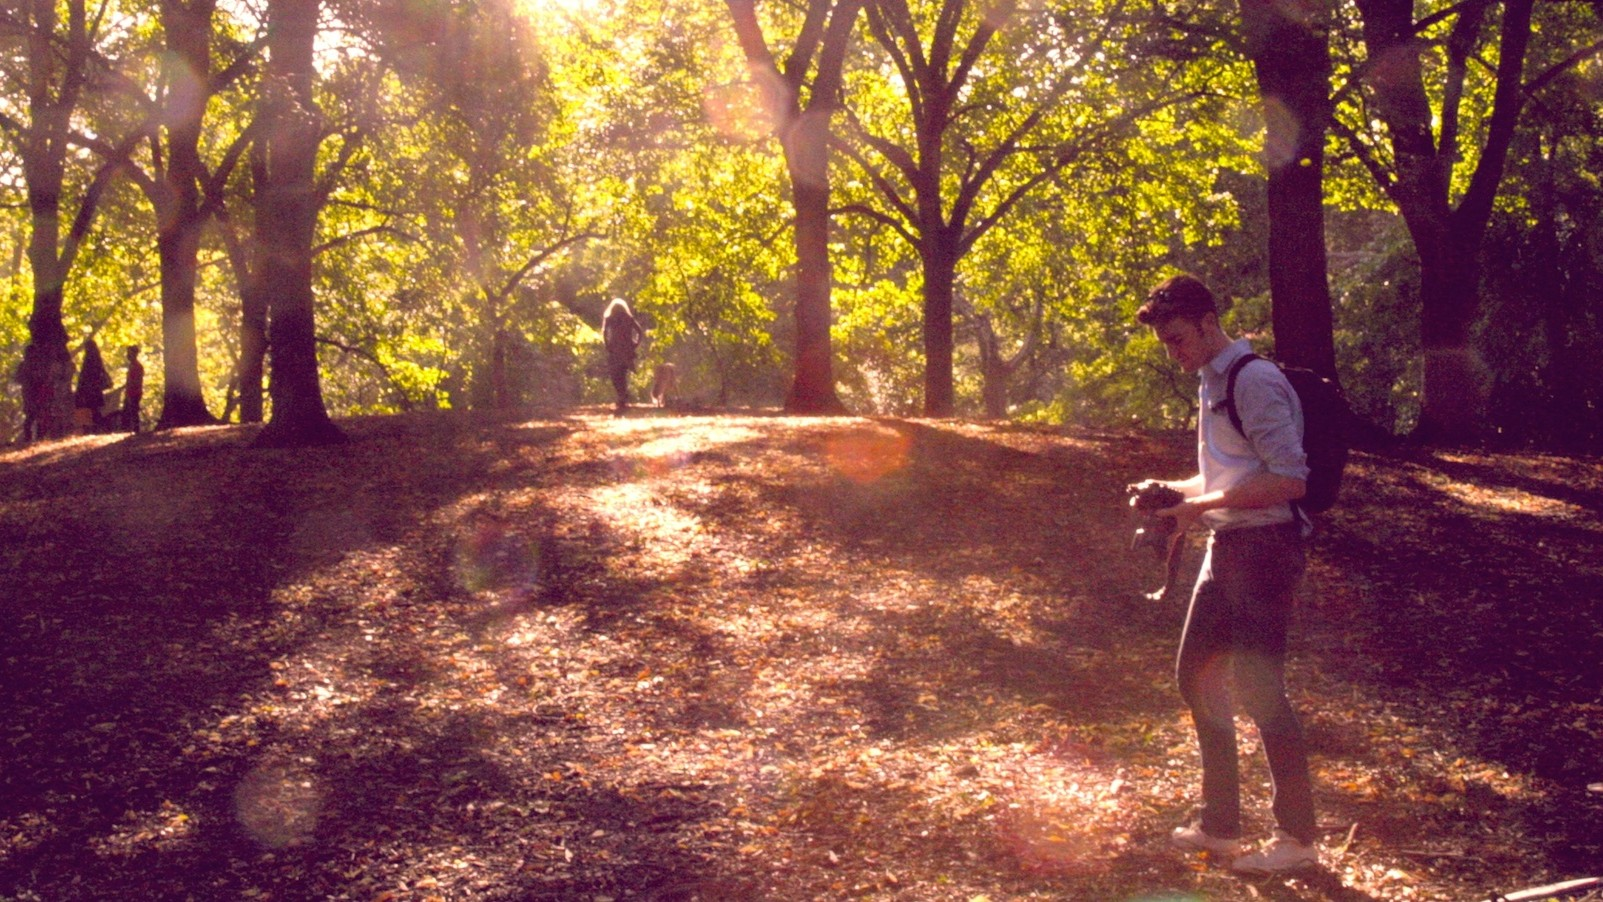 Central Park's Soil Is Home to Microbes Found All Over the World